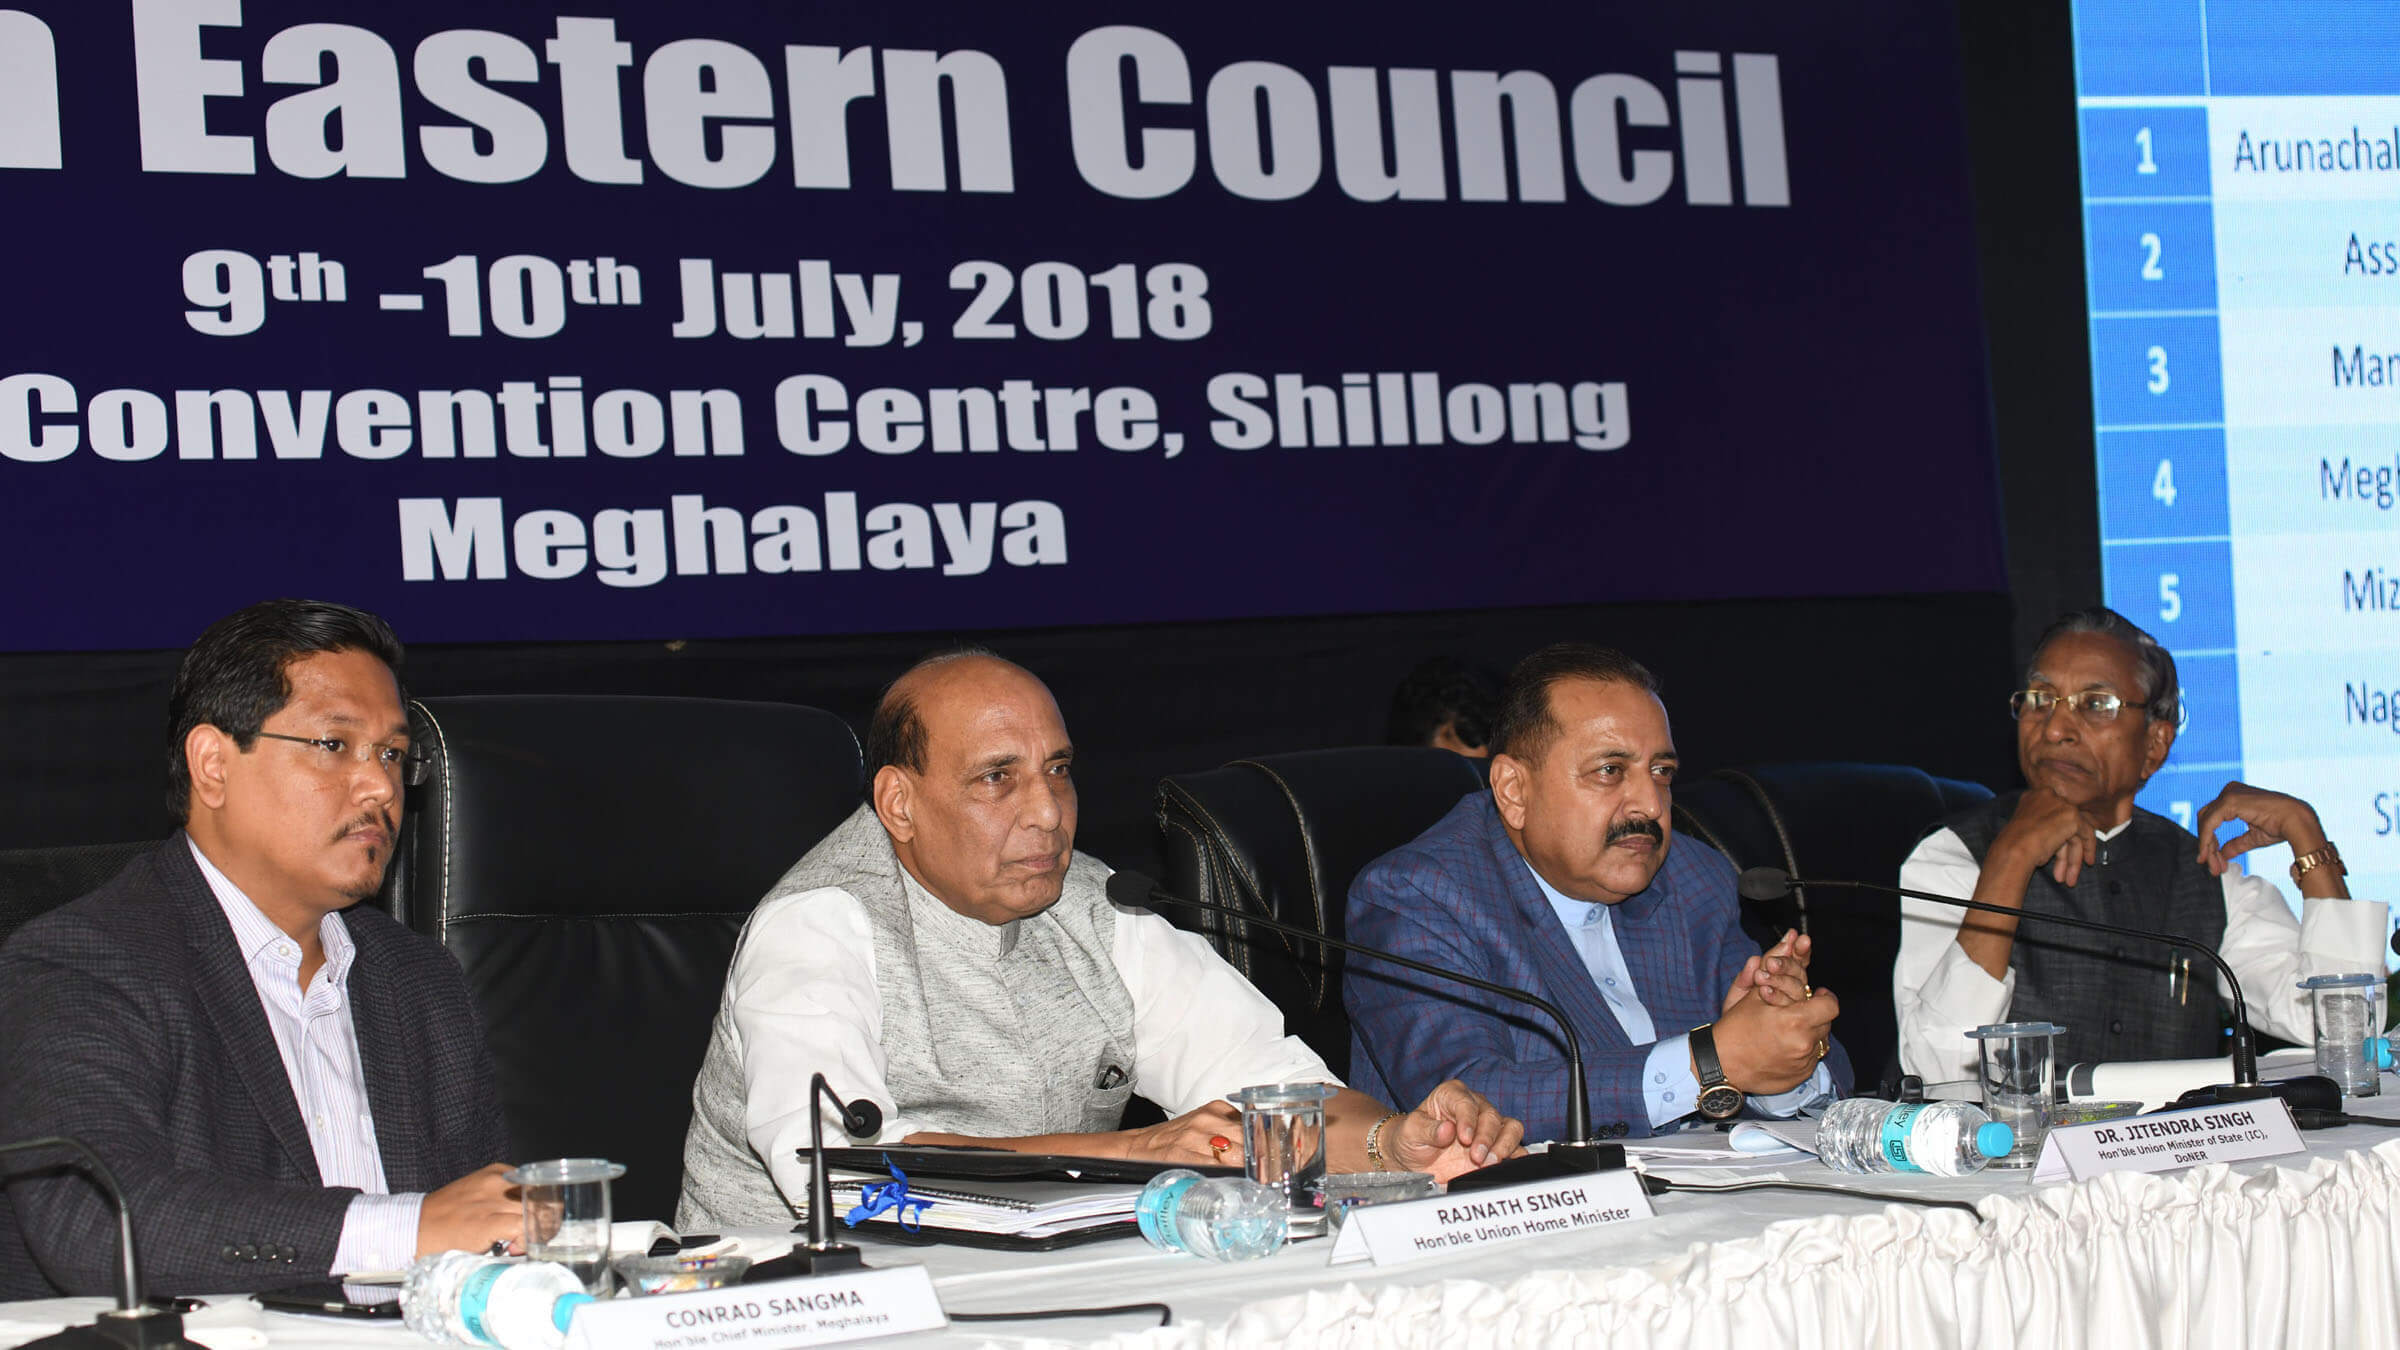 Take advantage of improving security: Union Home Minister Rajnath Singh to Northeast